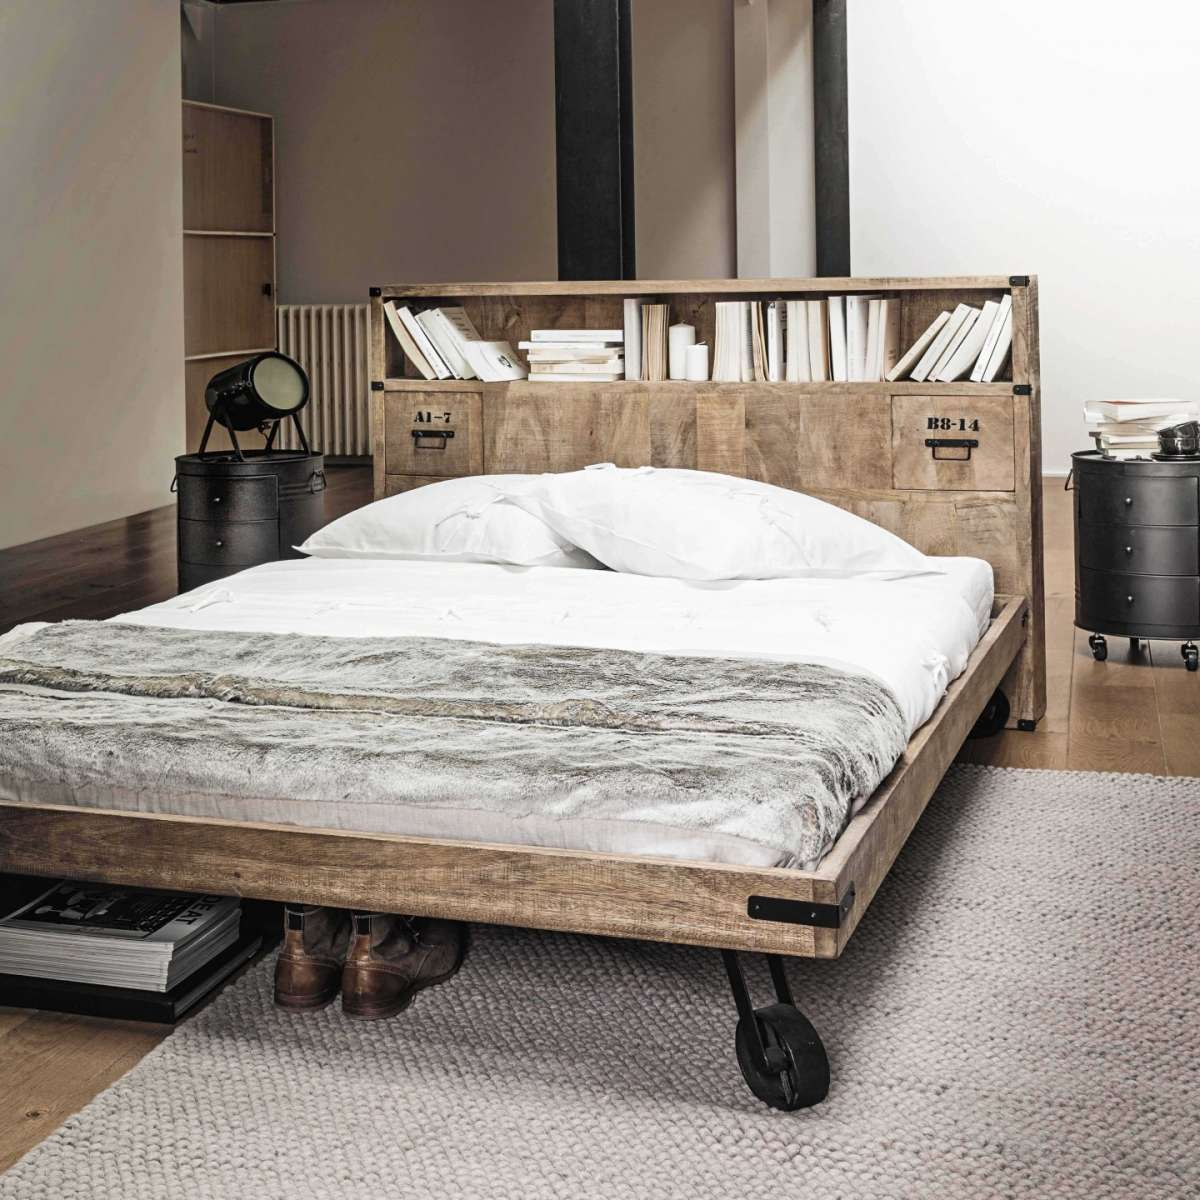 Favori Testiere letto originali (Foto 6/40) | Design Mag LB81